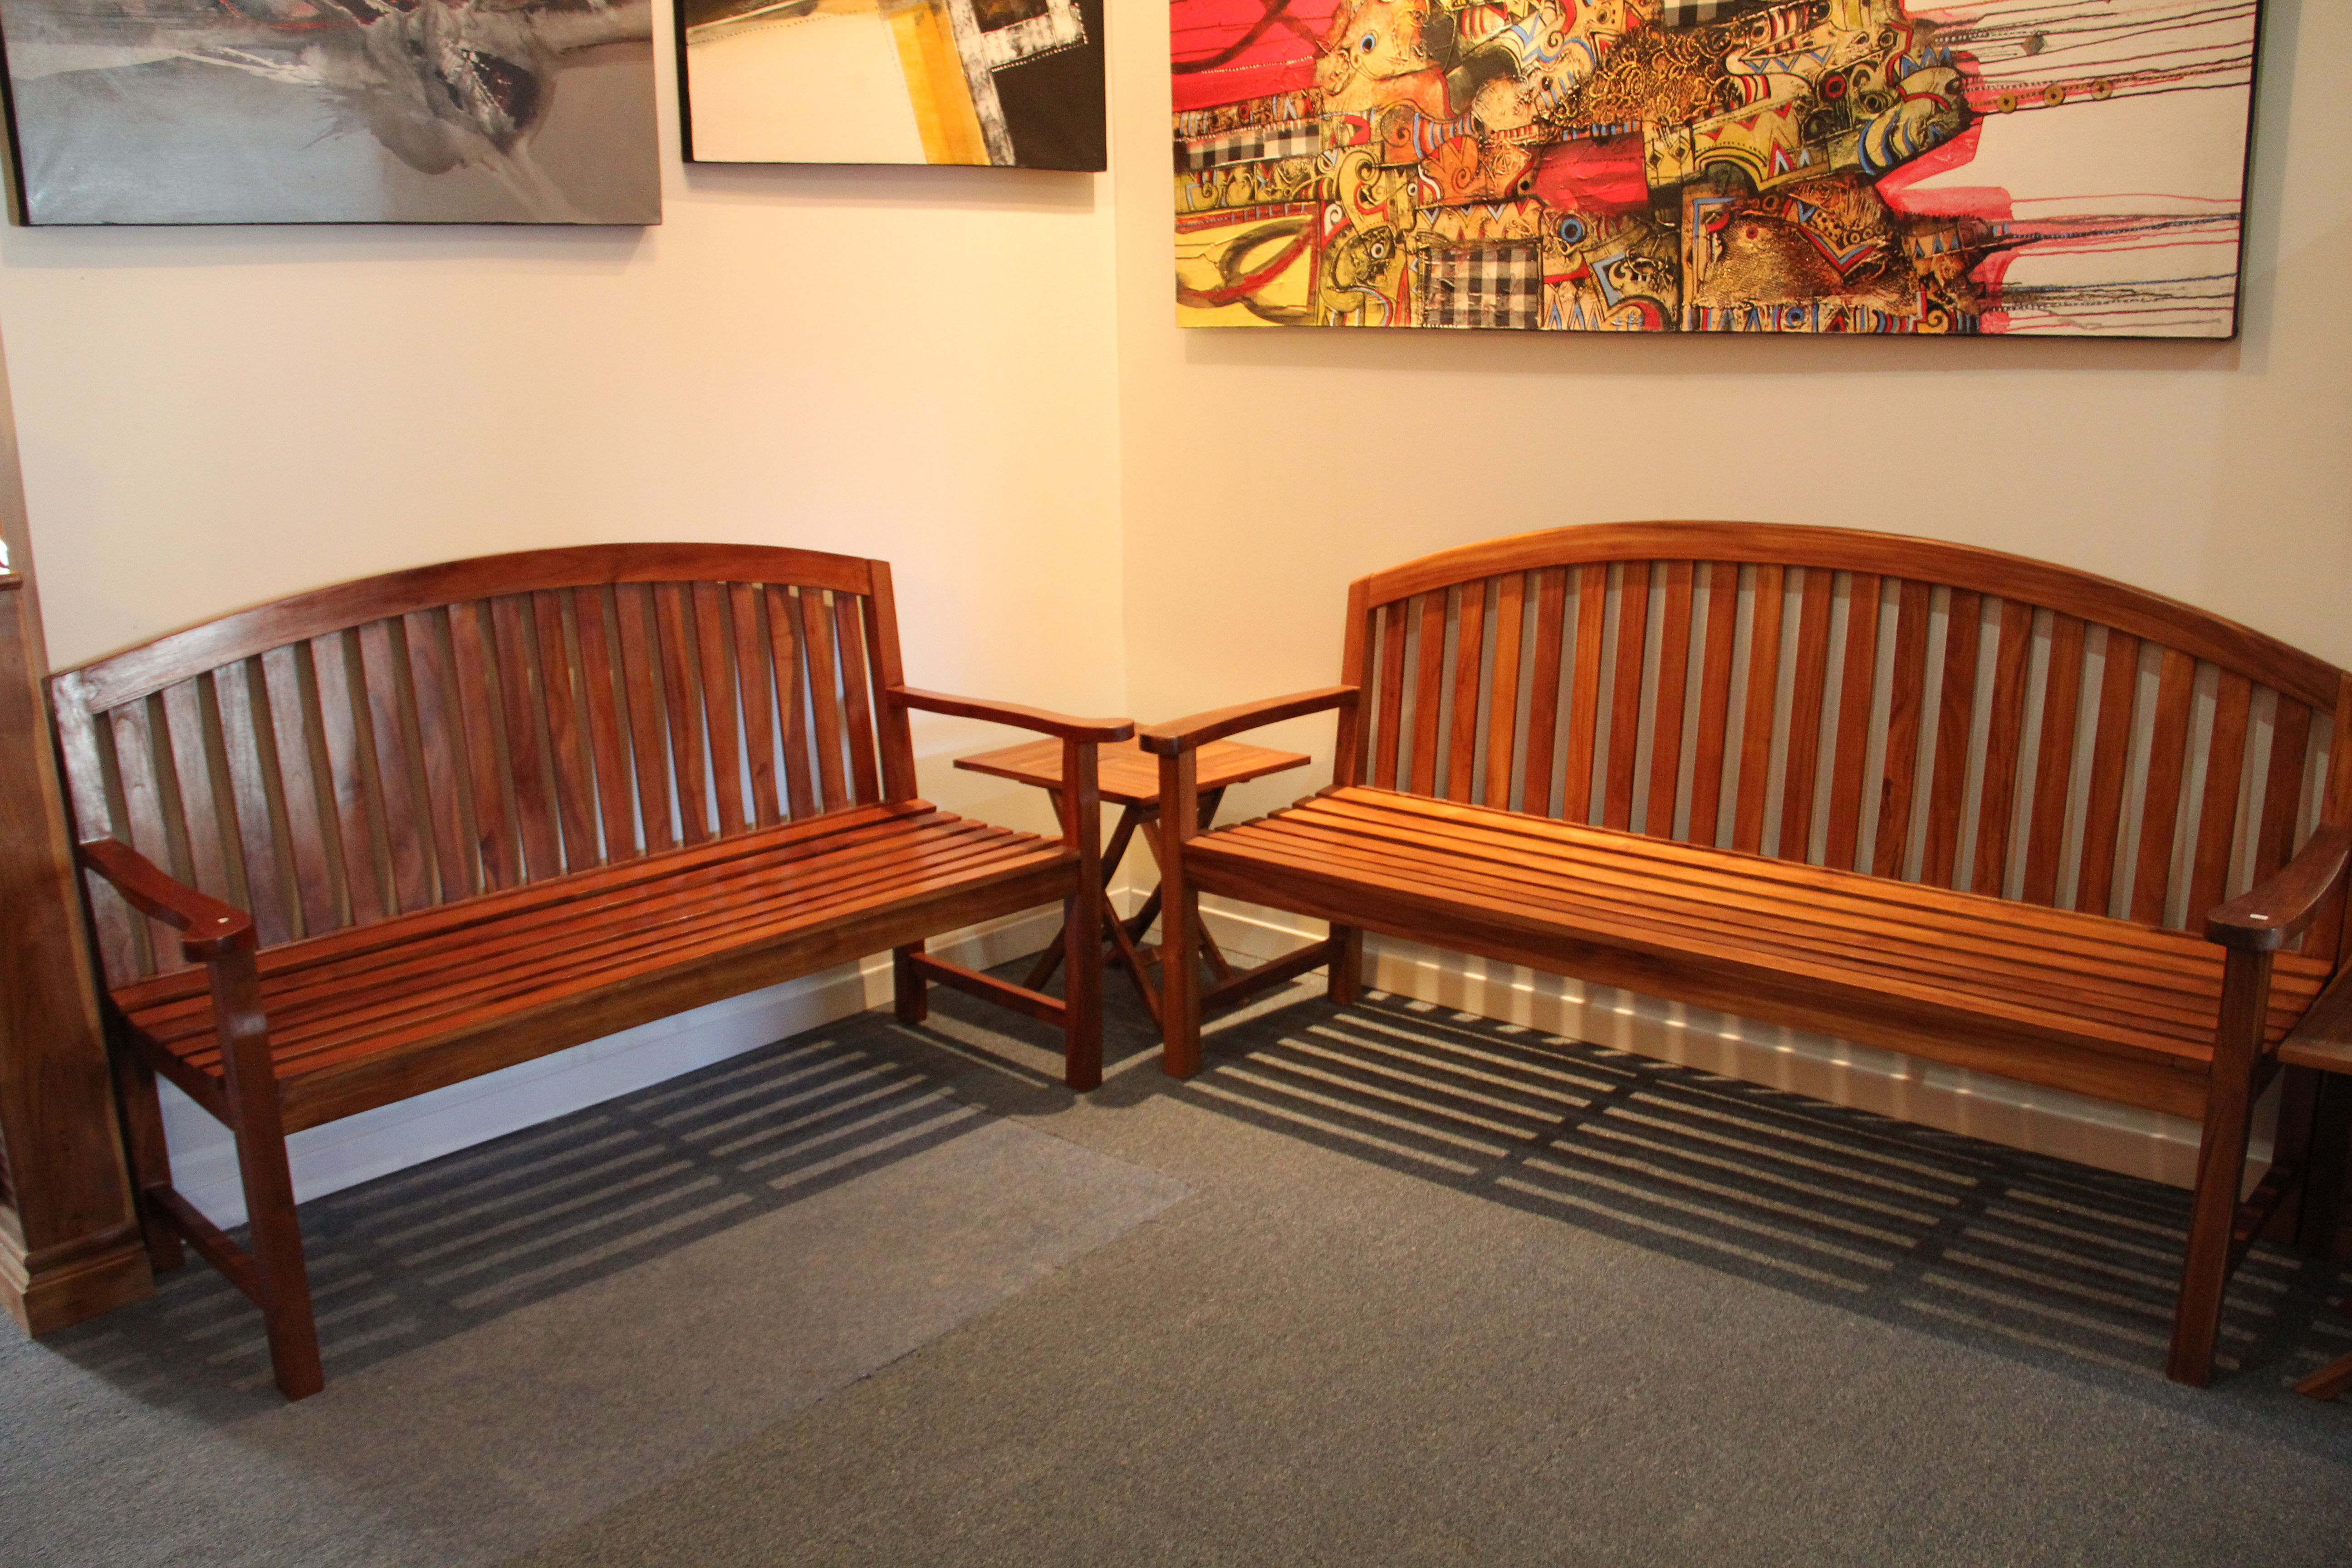 Benches come in two finishes